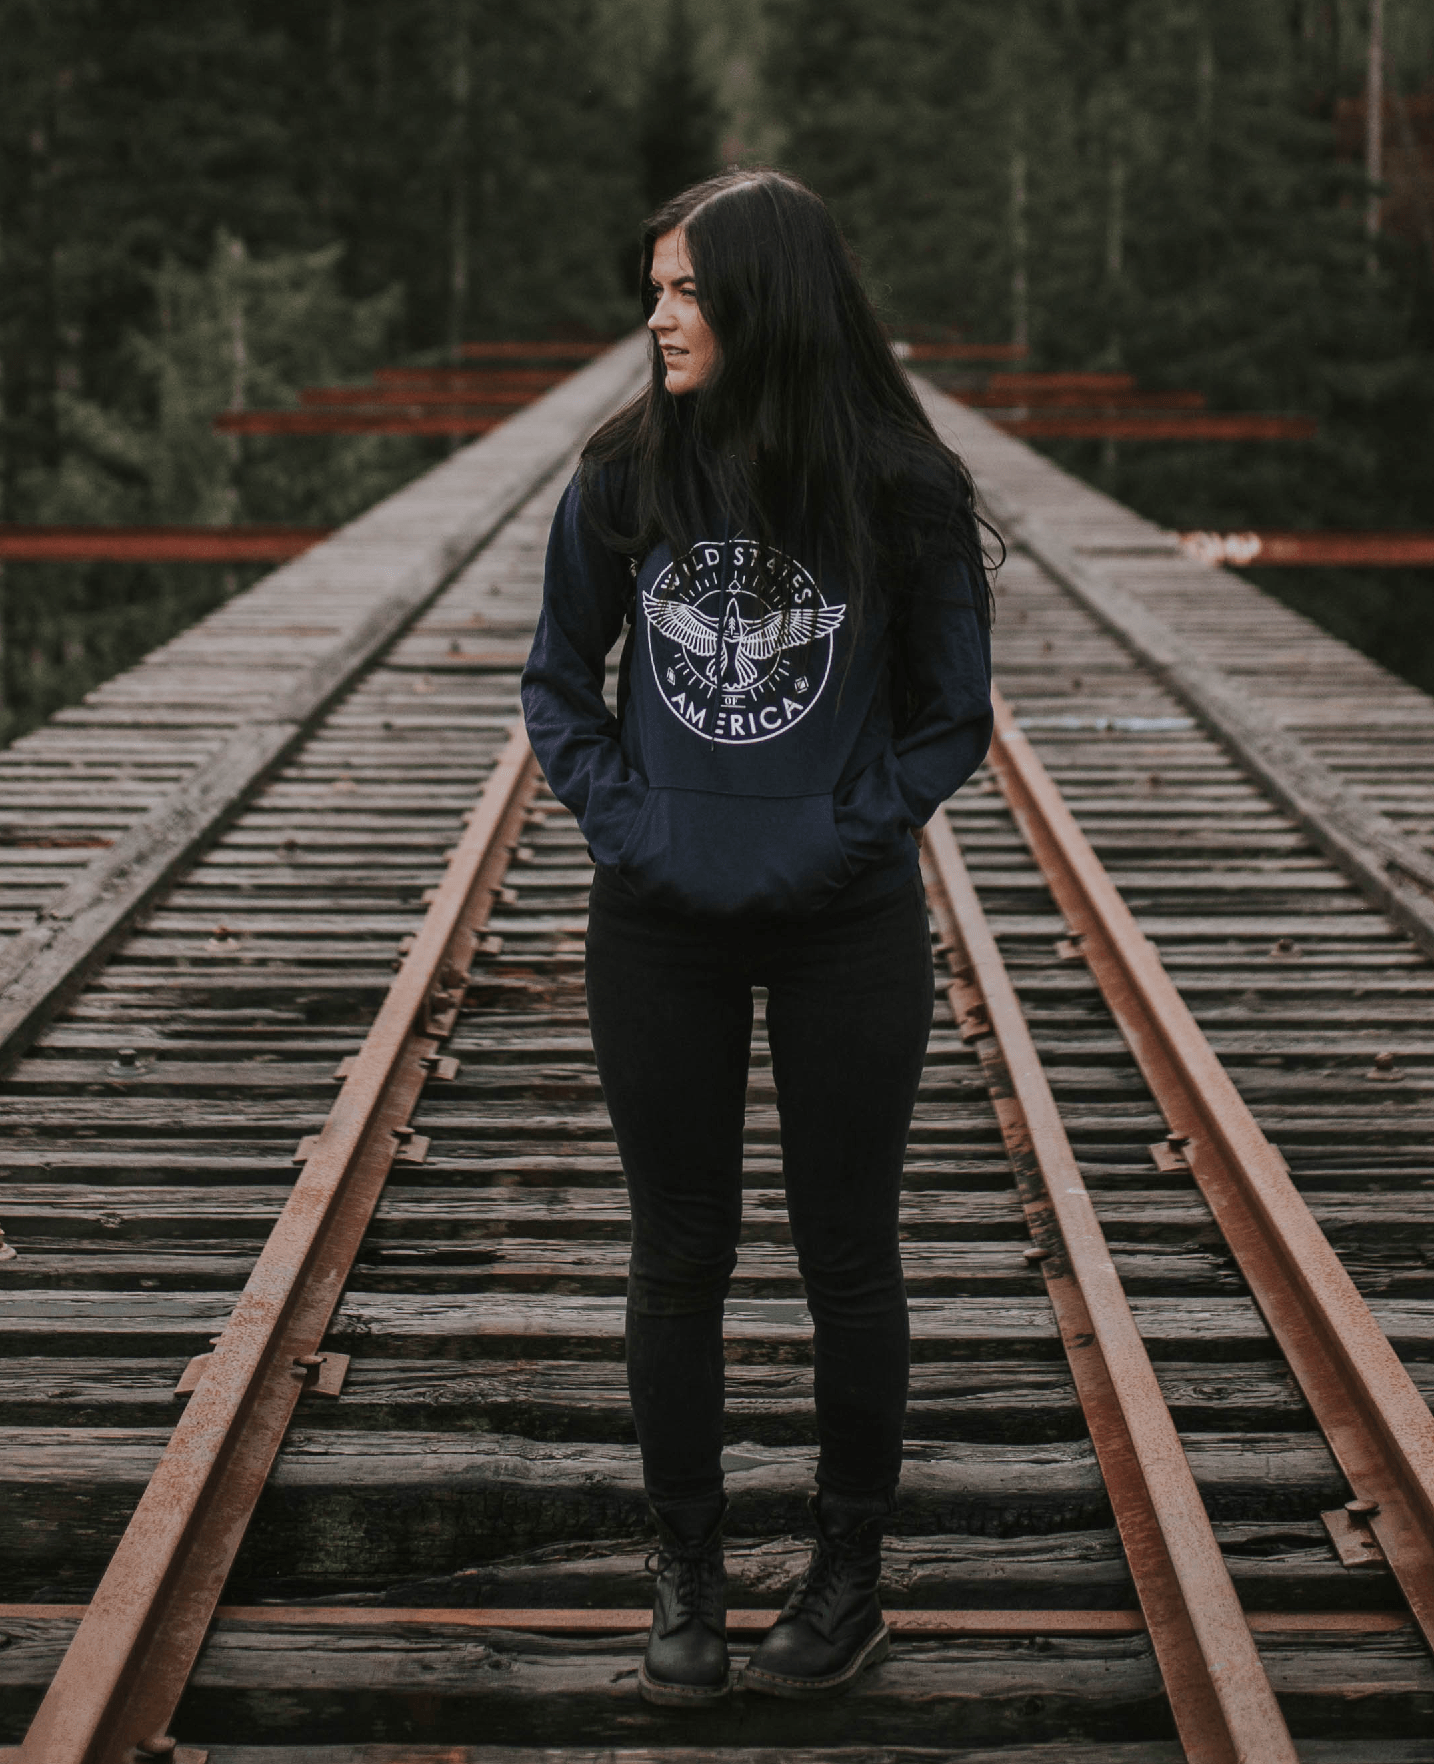 The Parks Wild States Hoodie